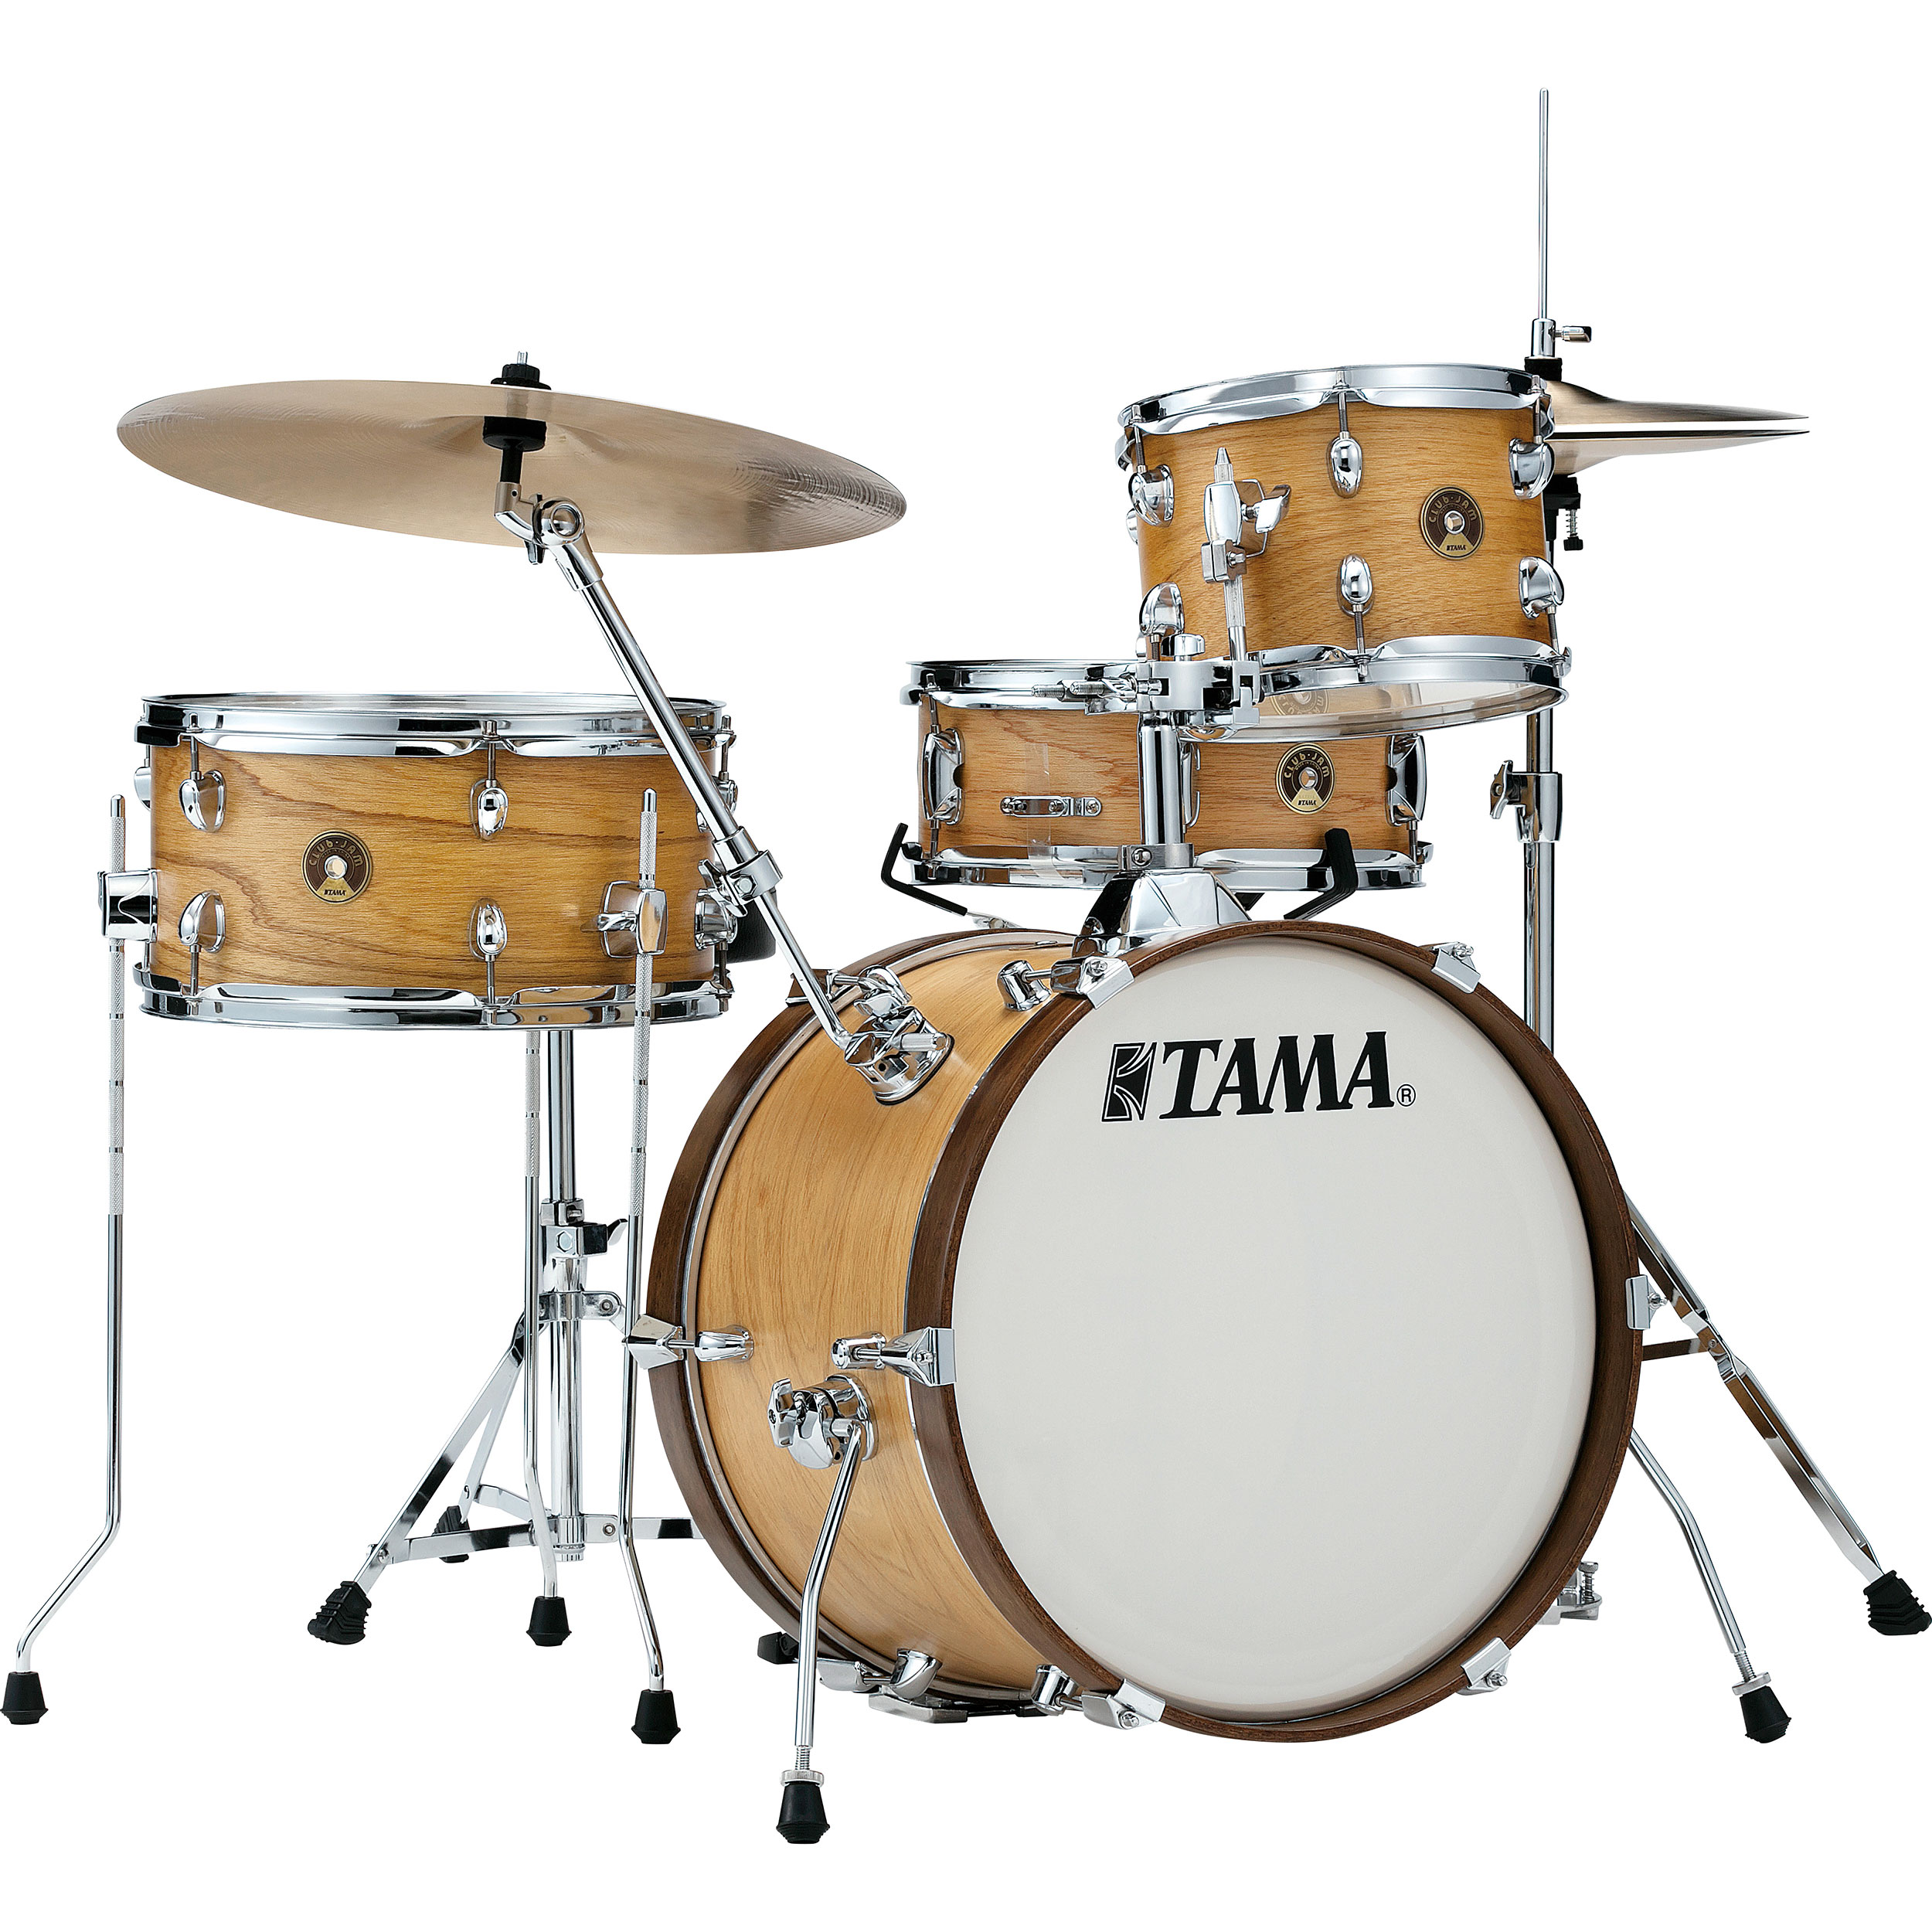 "Tama Club-Jam 4-Piece Drum Set Shell Pack (18"" Bass, 10/14"" Toms, 13"" Snare) in Lacquer Finish"